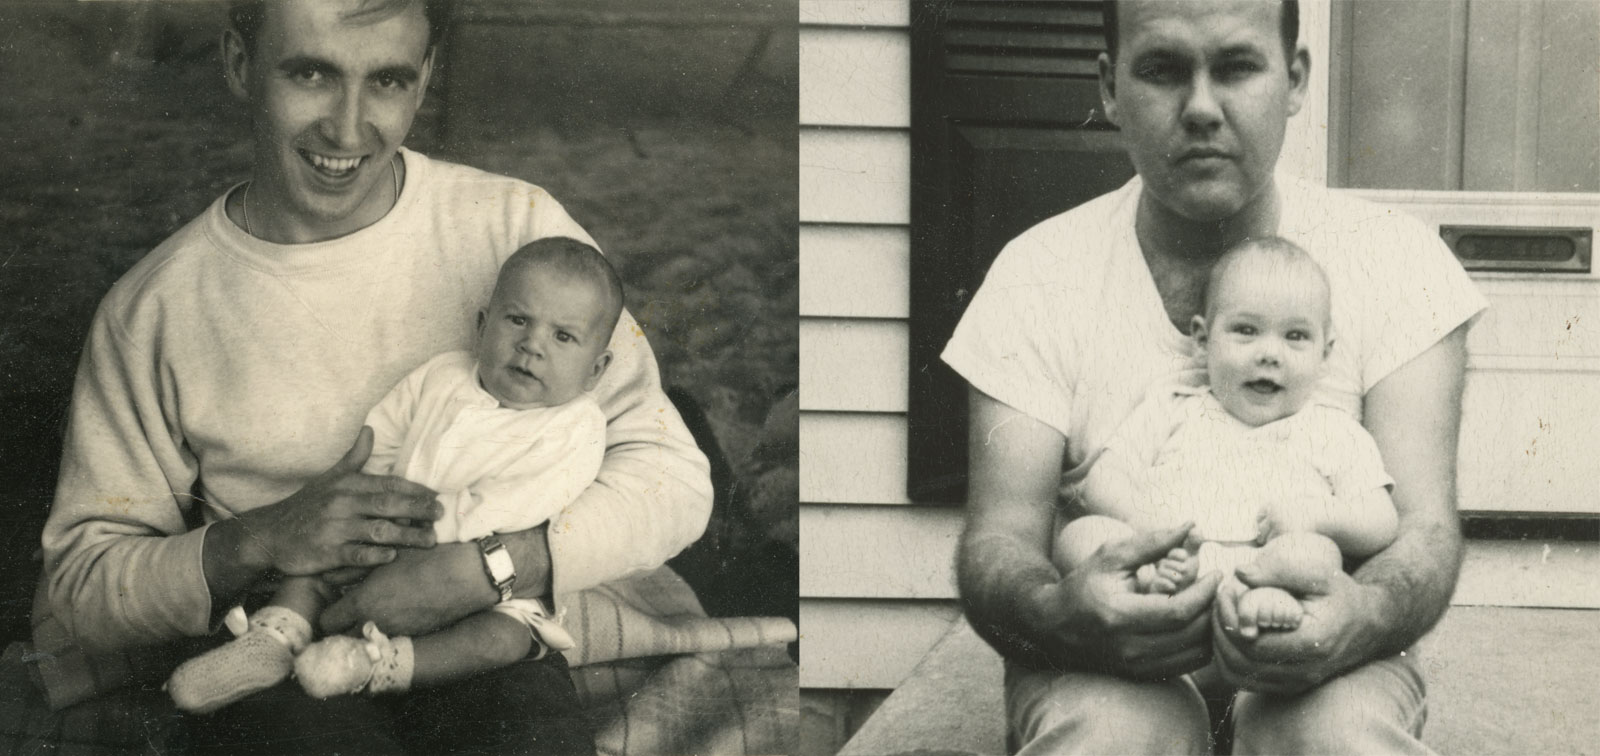 Paul with Leo in 1950. Peggi with John 1950.